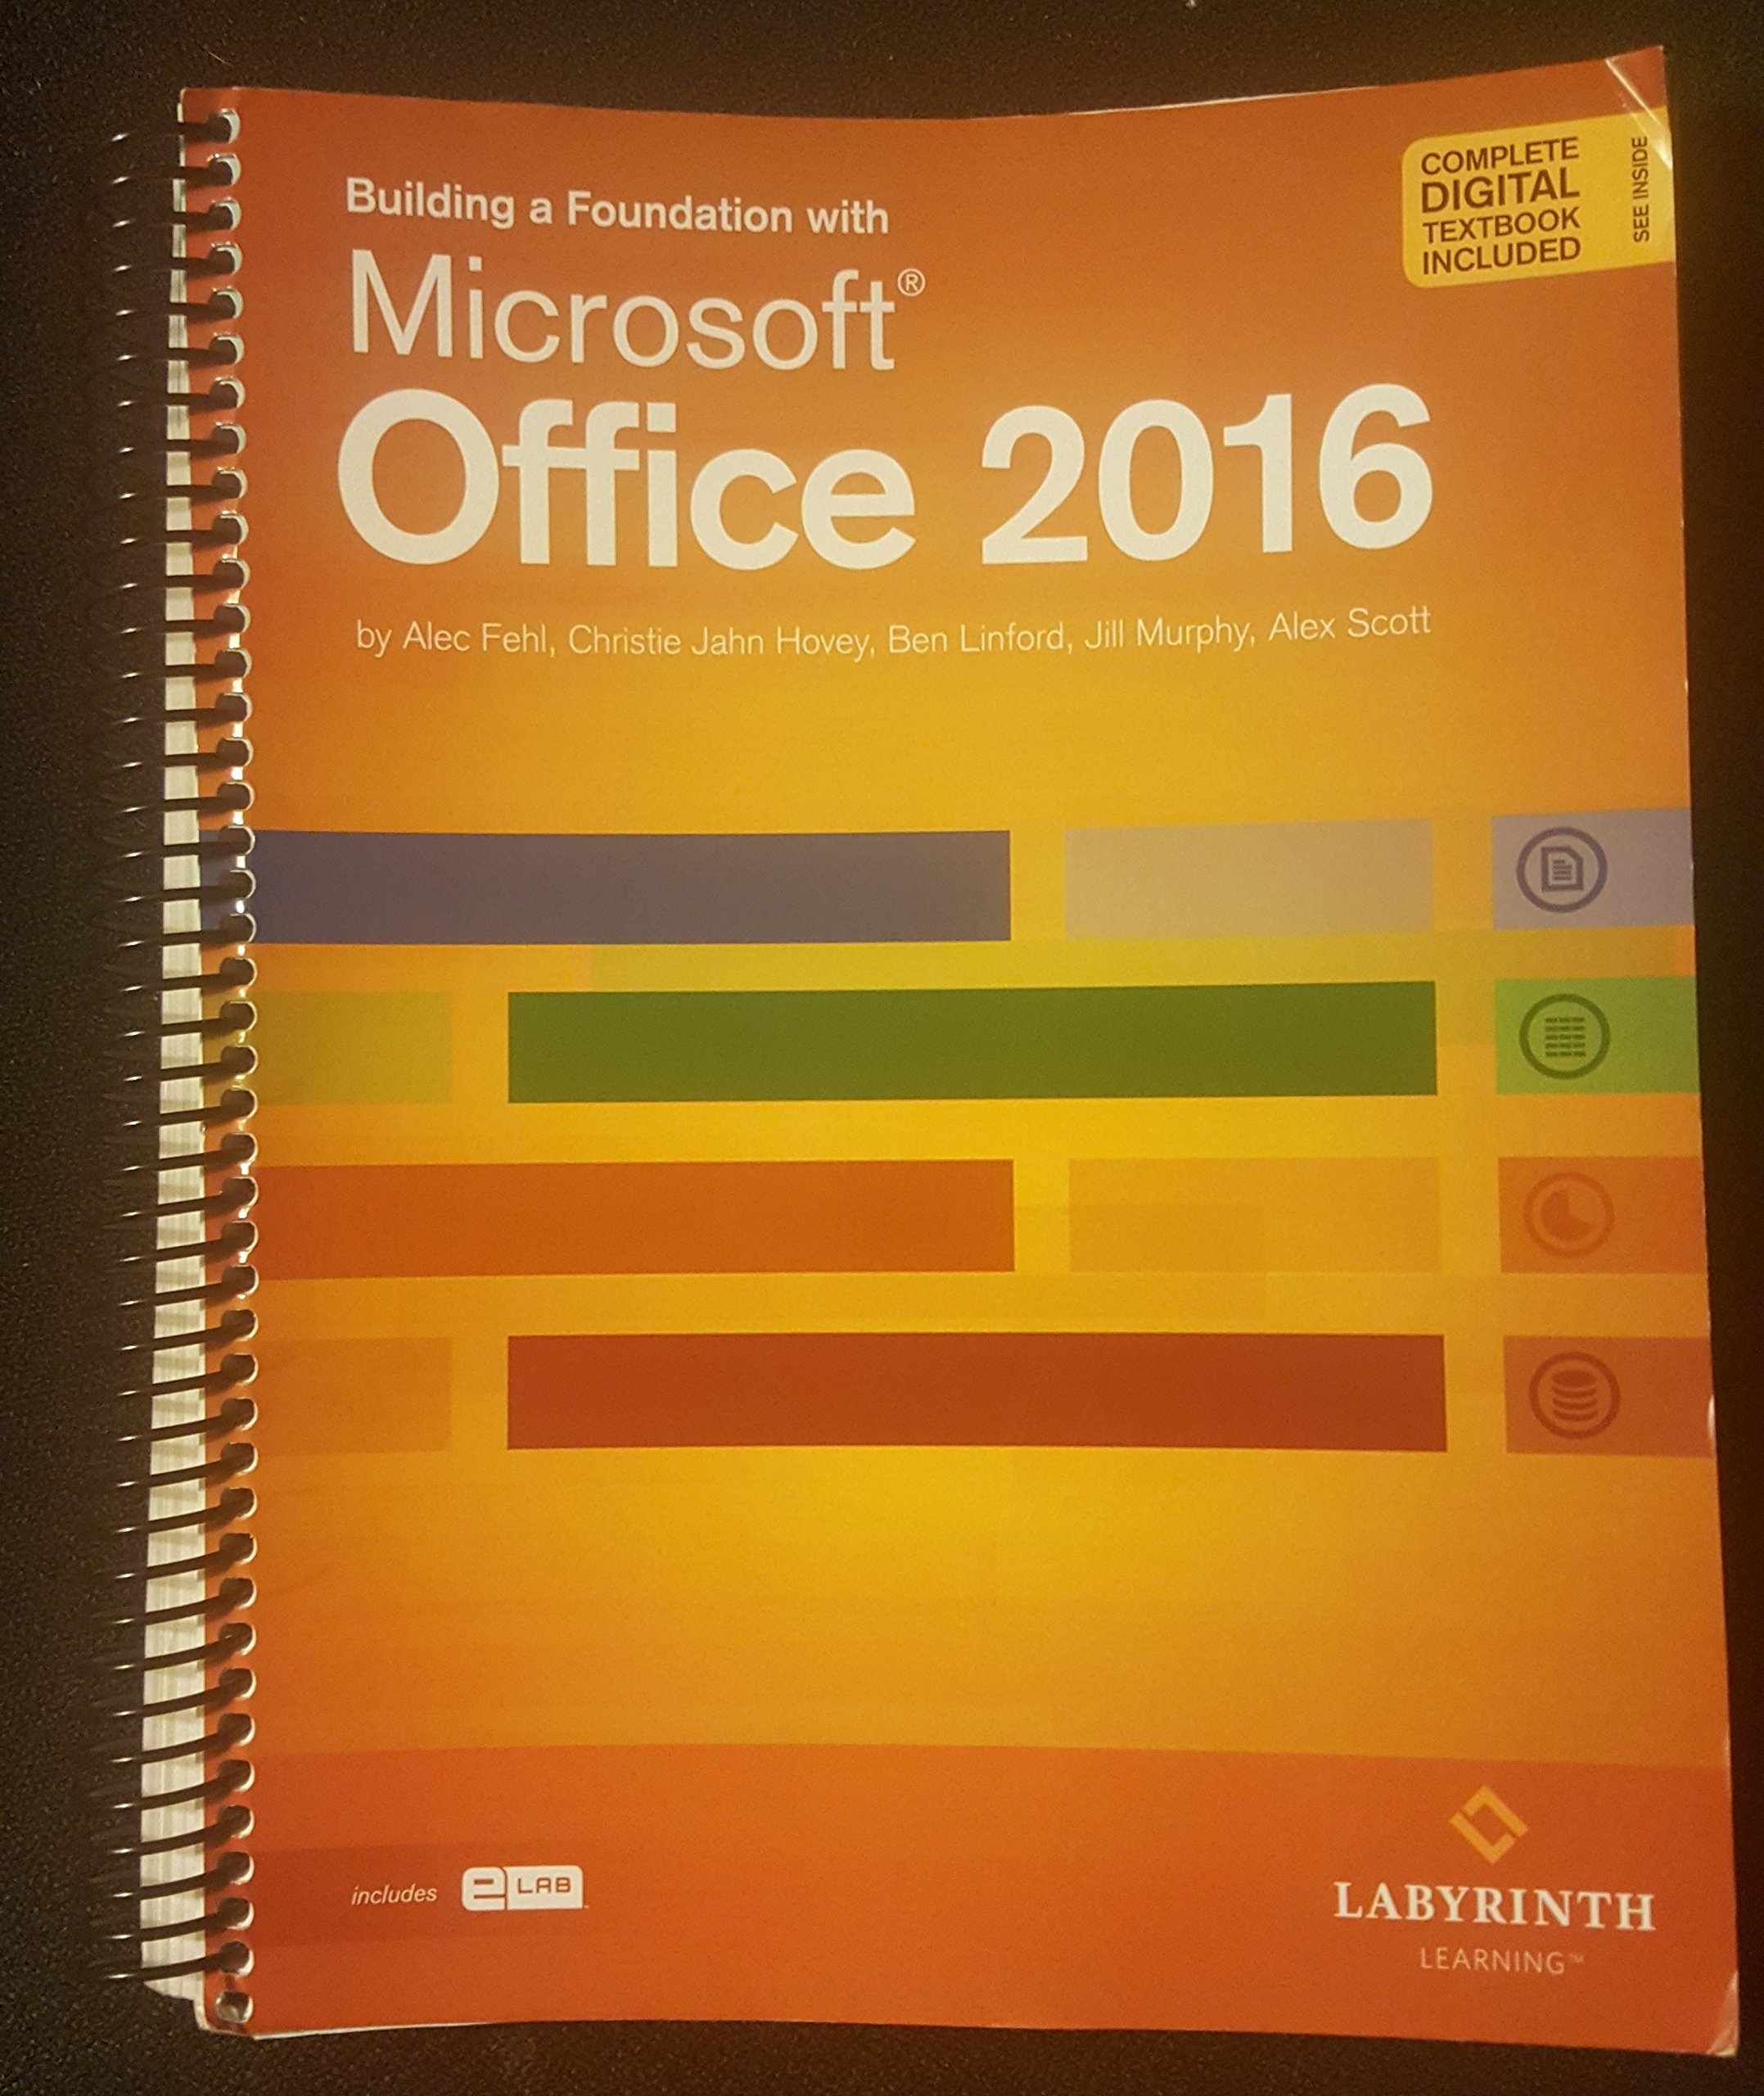 Microsoft Office 2016 >> Building A Foundation With Microsoft Office 2016 Is The Title For